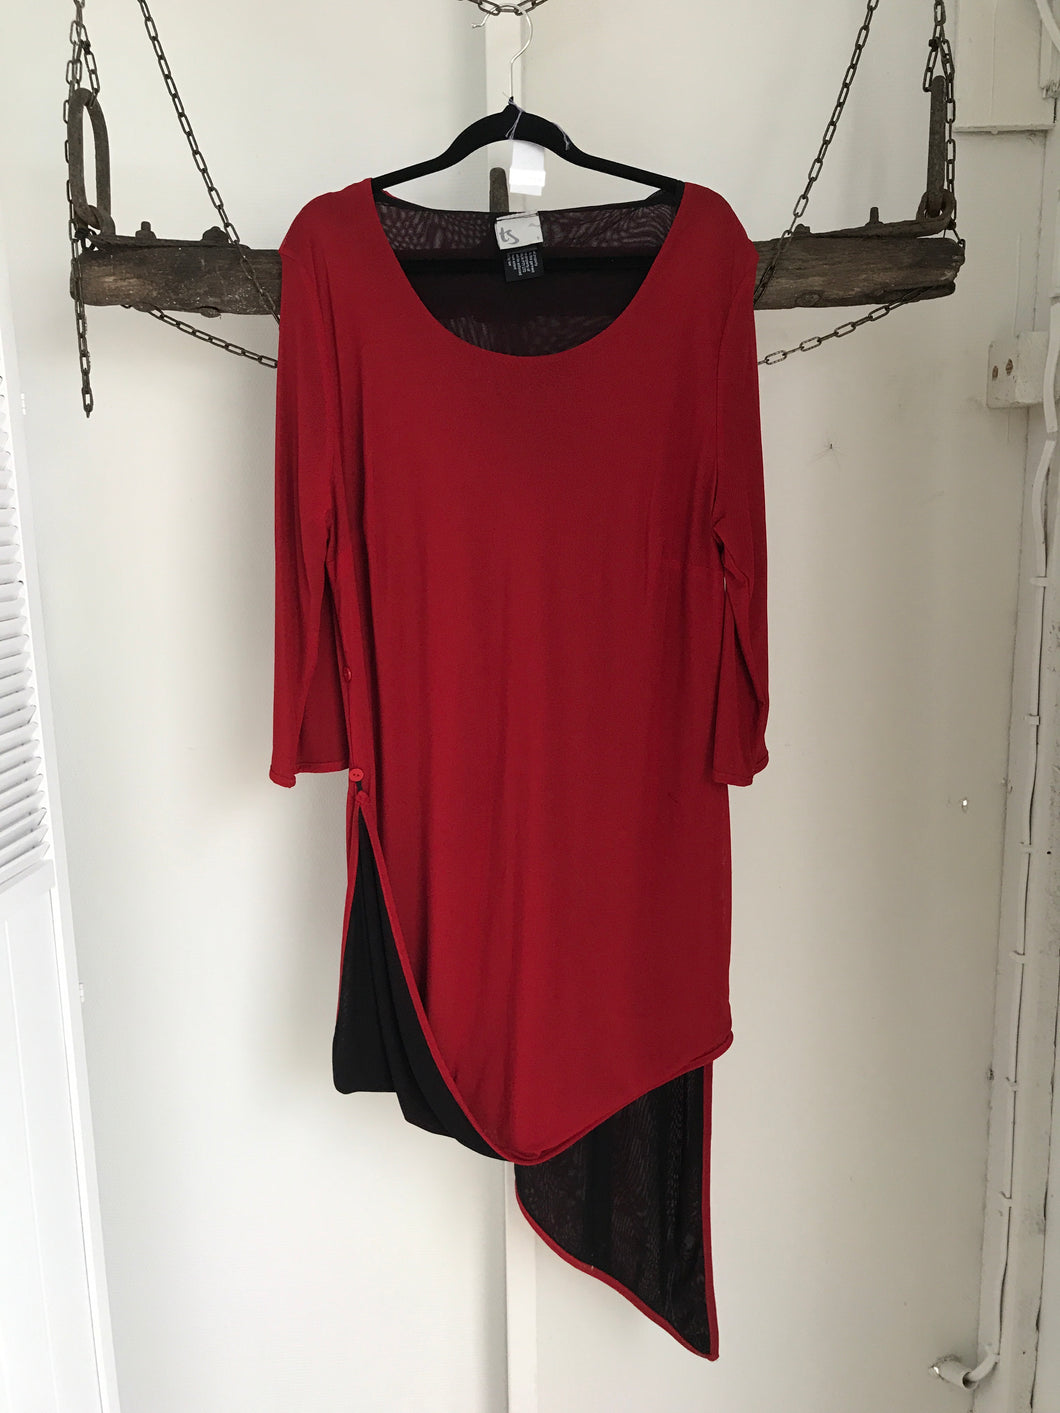 TS Red Black Top Size S (16)